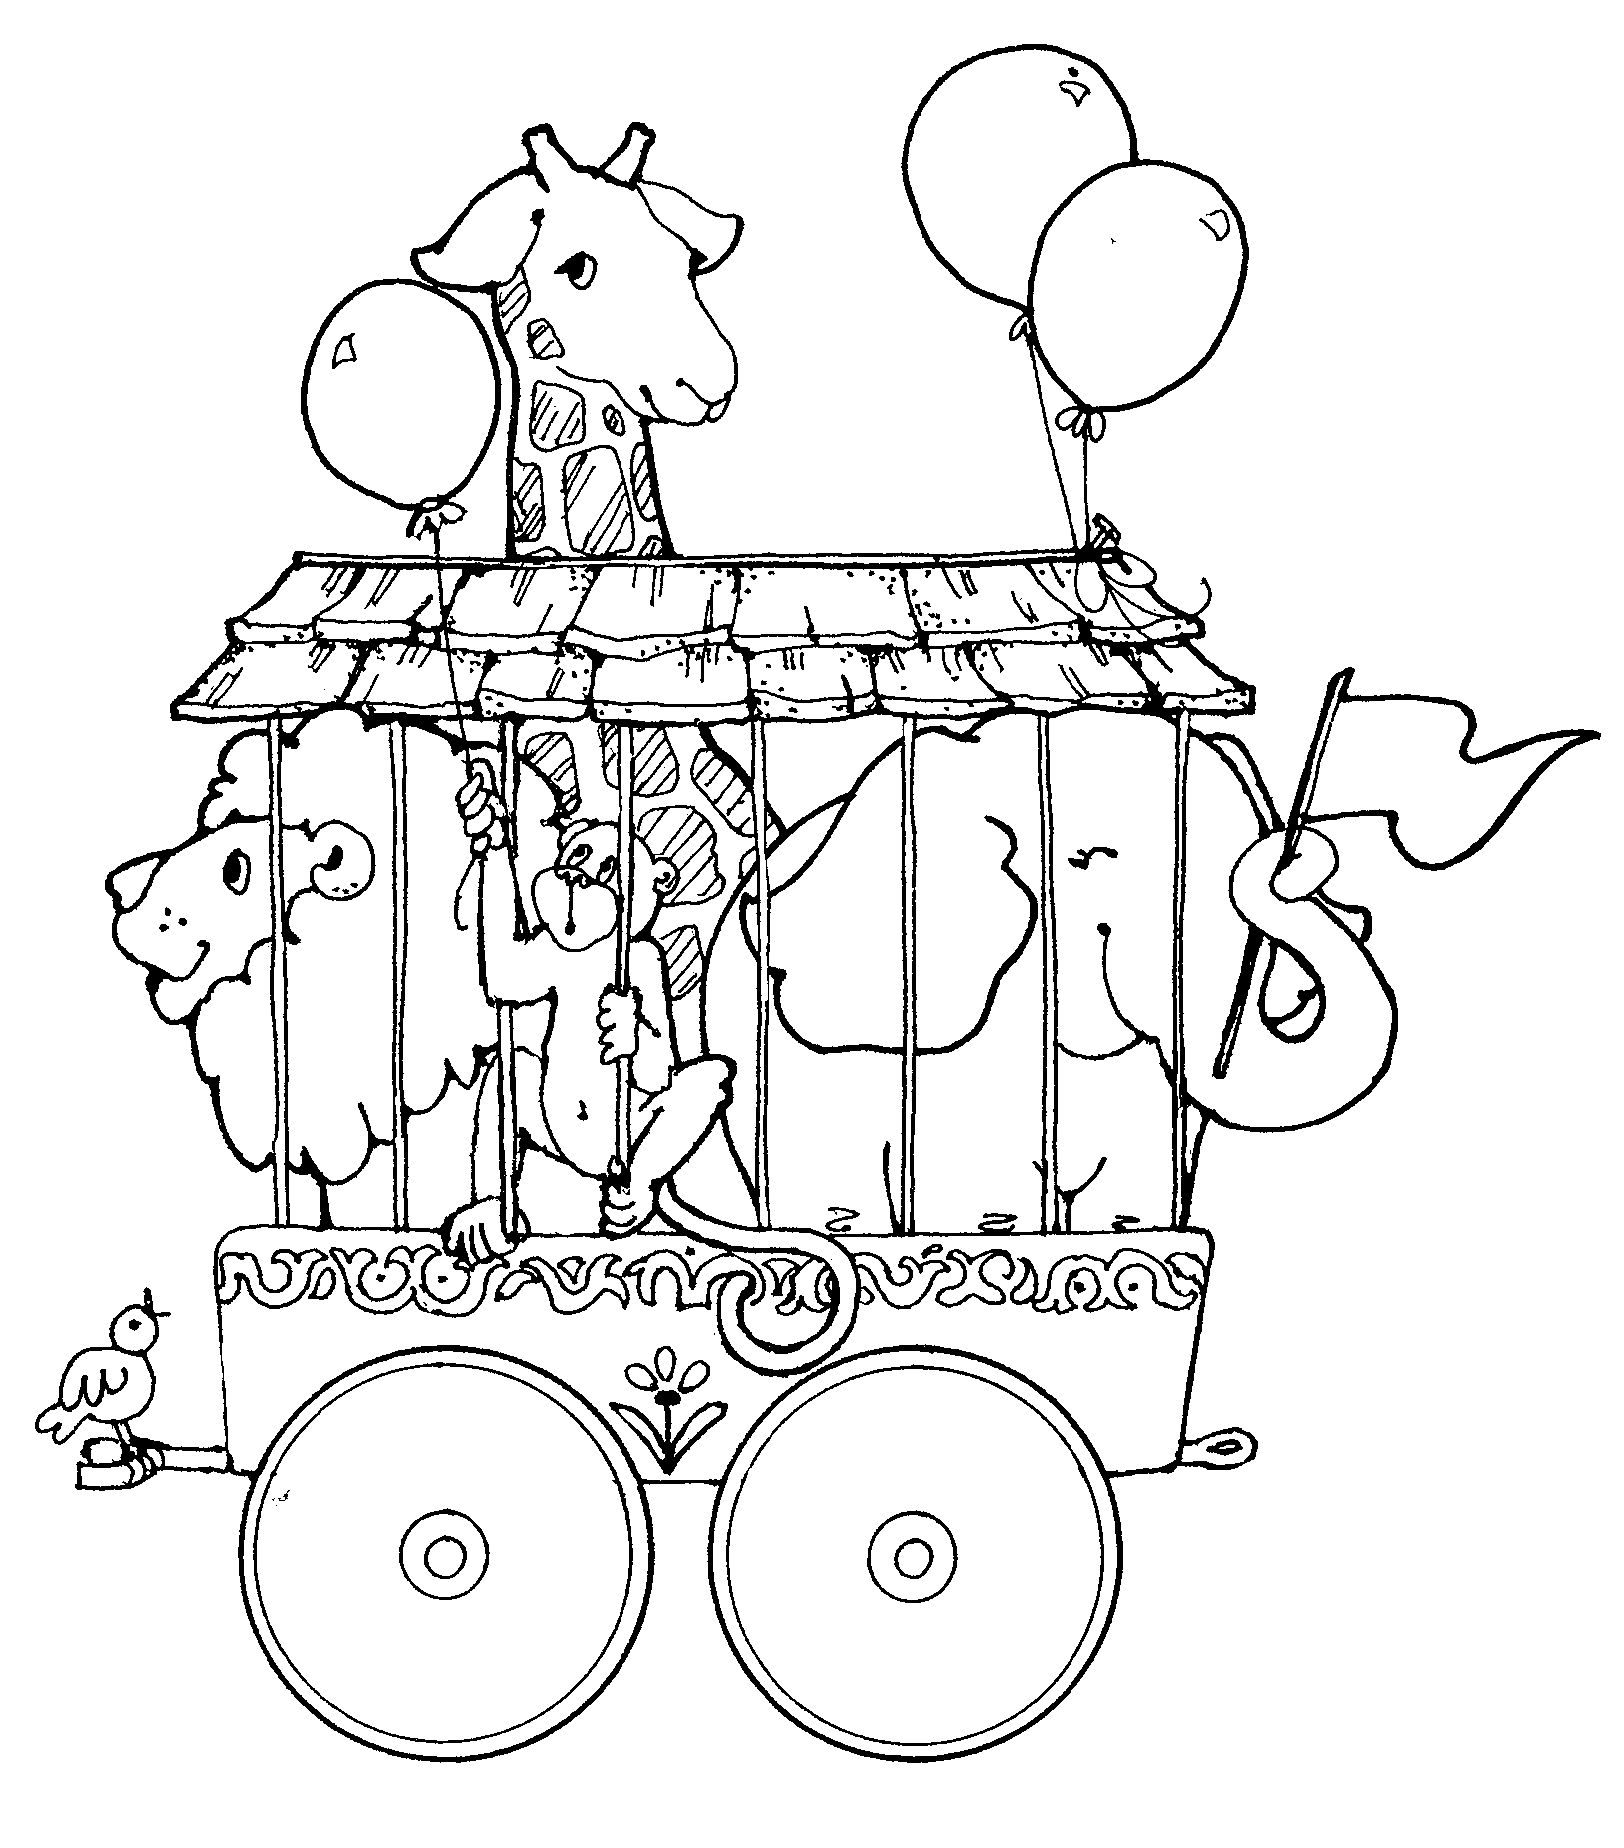 Coloring pages trains for kids - Circus Train Animals Coloring Page For Kids And Adults From Animals Coloring Pages Circus Animals Coloring Pages